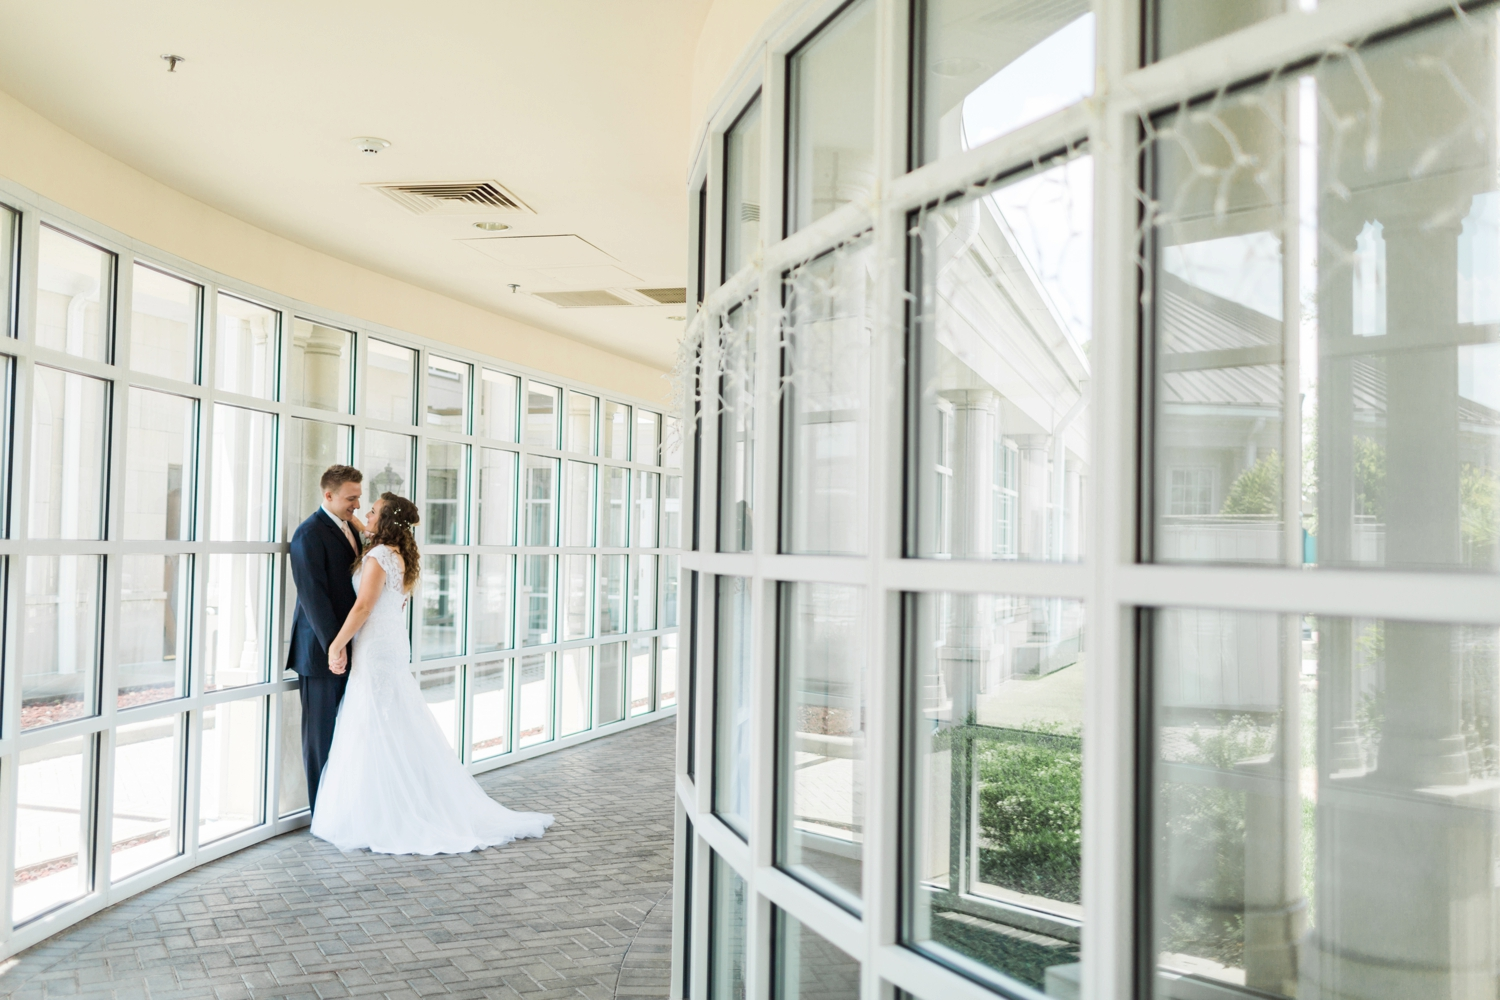 Community_Life_Center_Indianapolis_Indiana_Wedding_Photographer_Chloe_Luka_Photography_6889.jpg